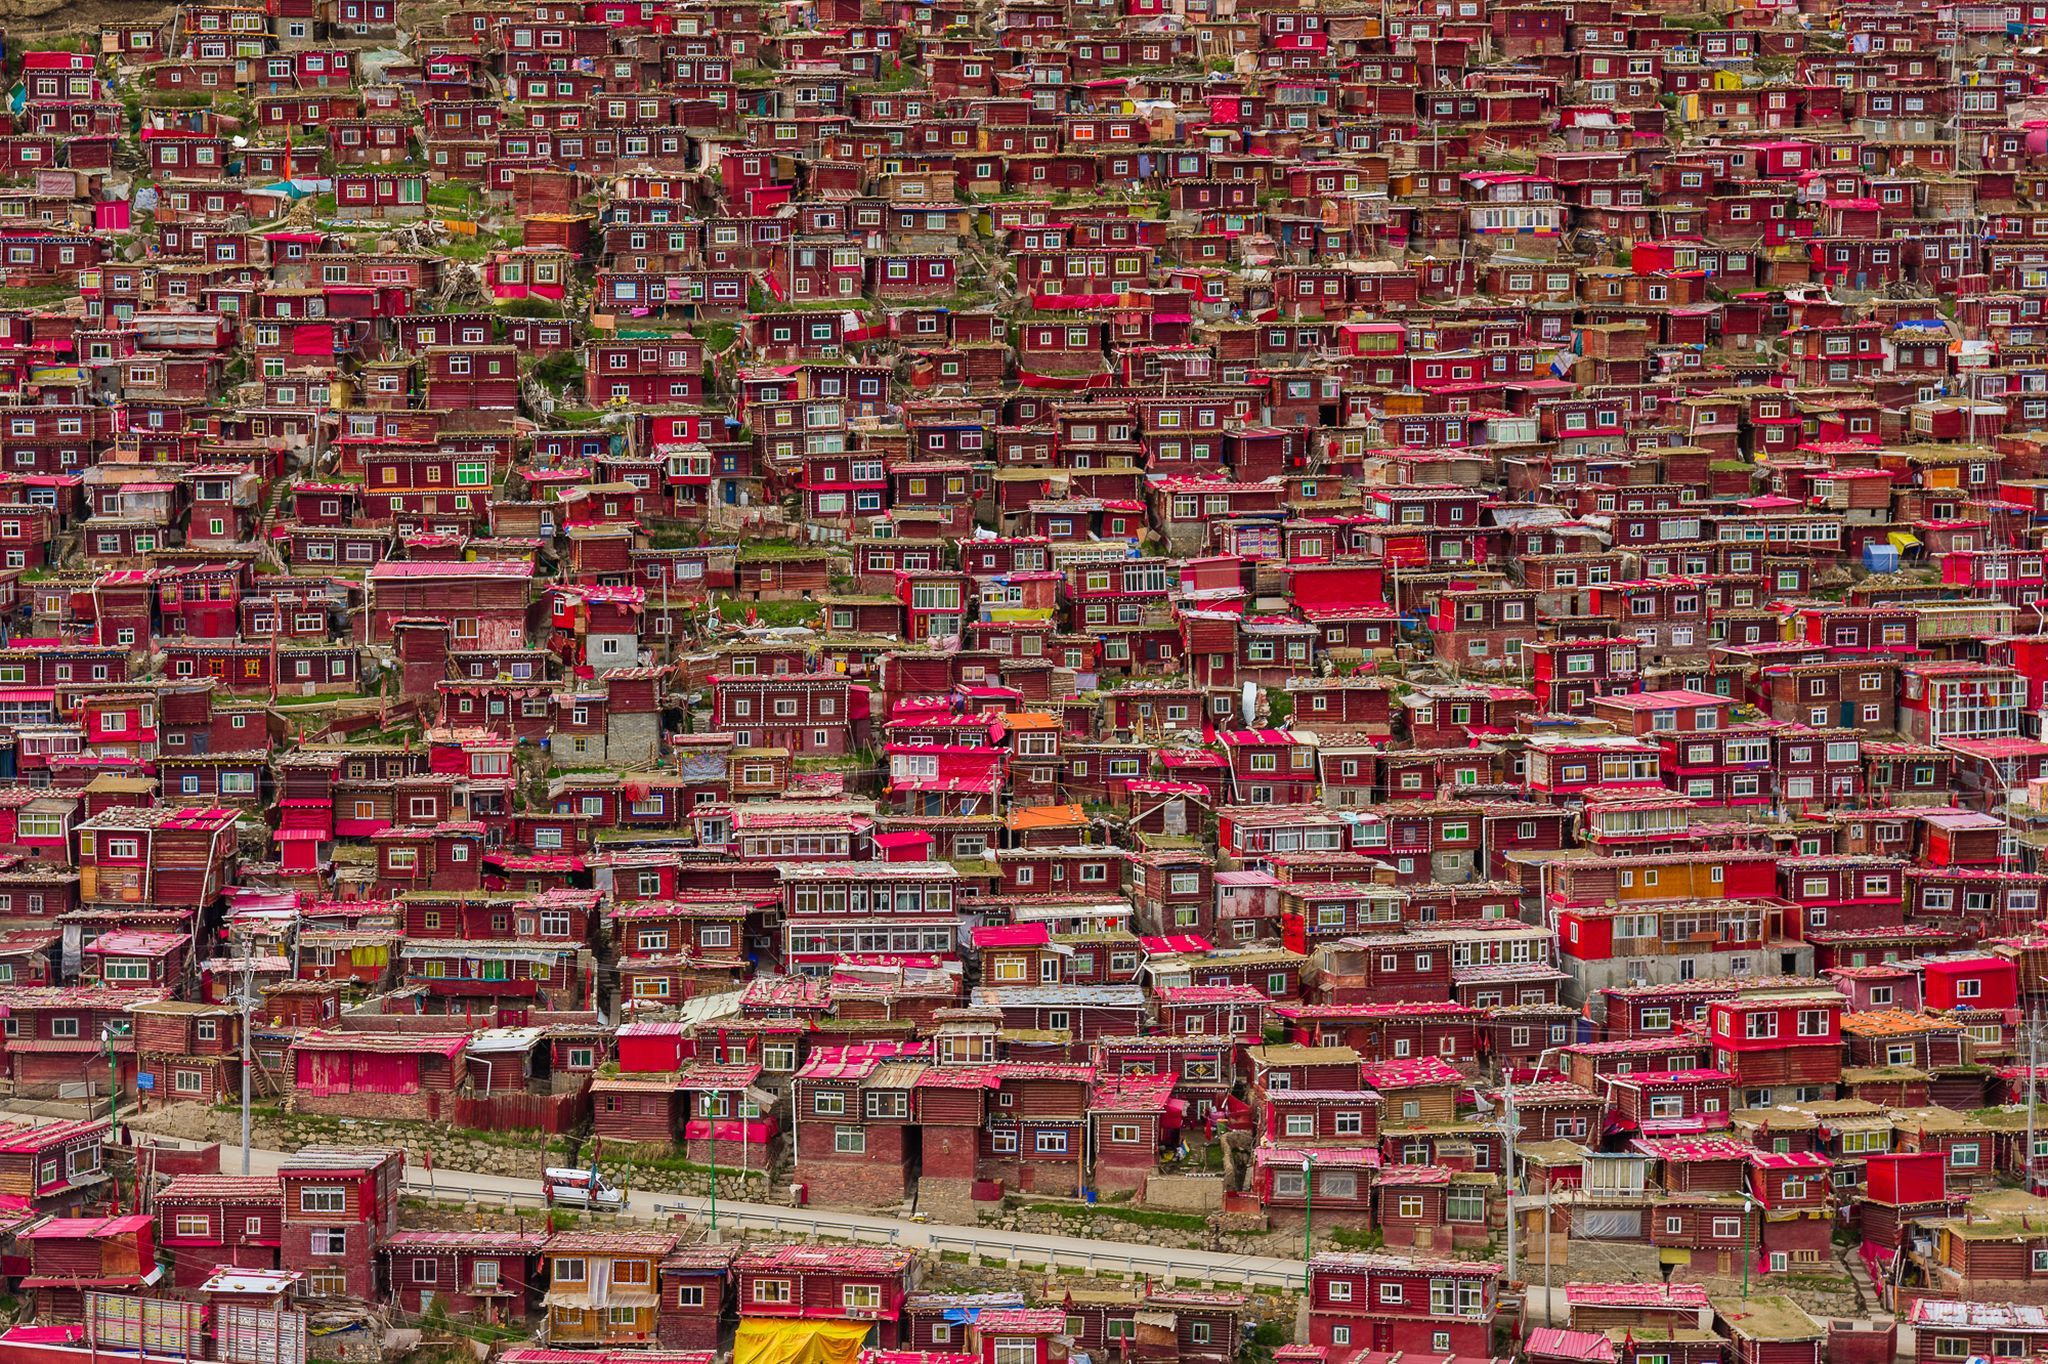 Houses on hill, Tibet, China